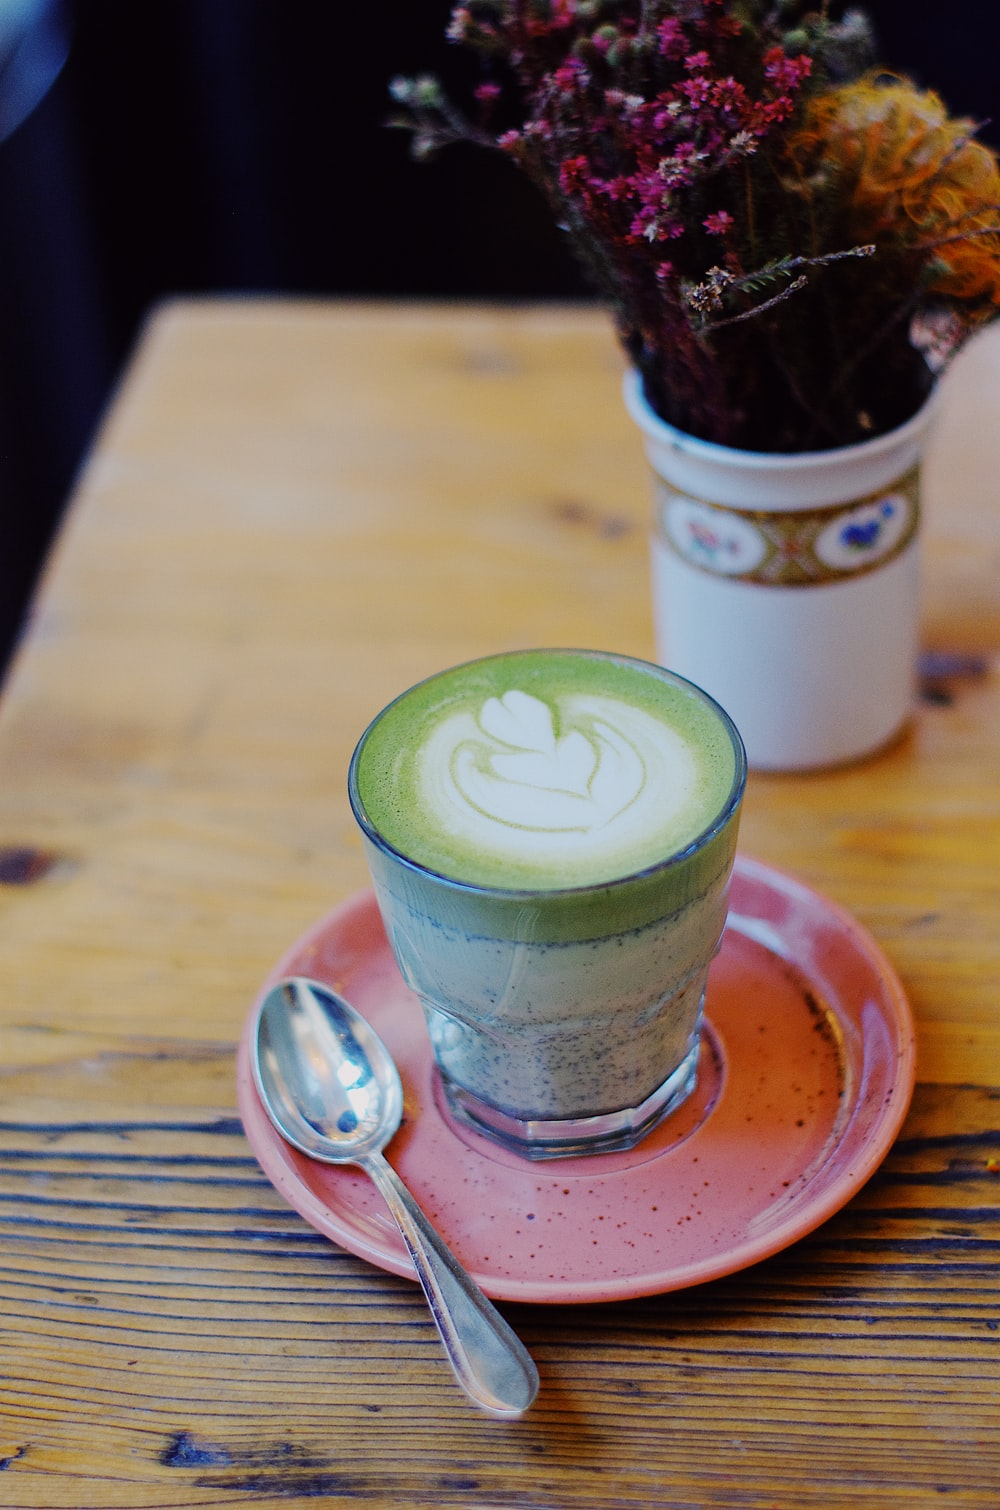 green and white beverage on saucer